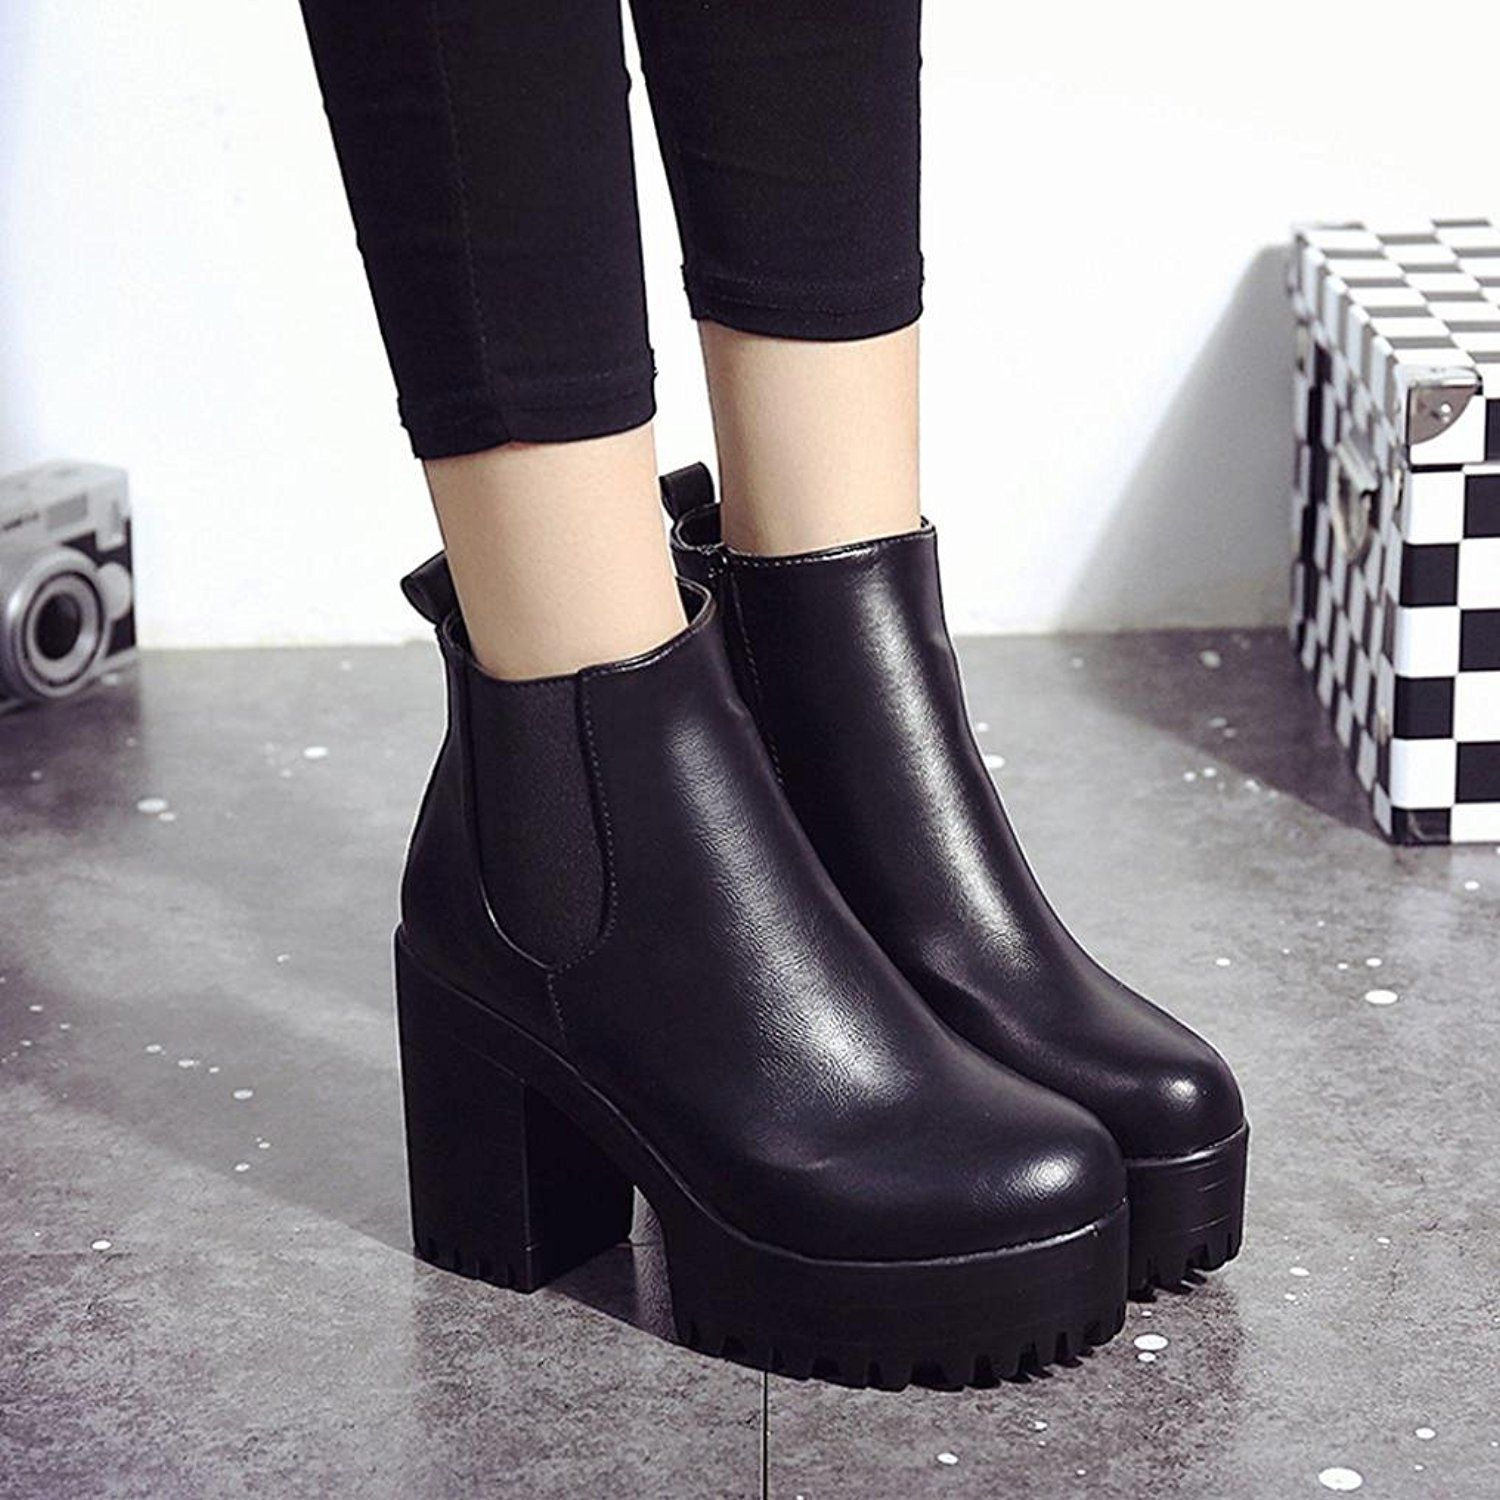 Women's Zipper Fashion Sexy Vintage Platform High Chunky Heel Short Boots